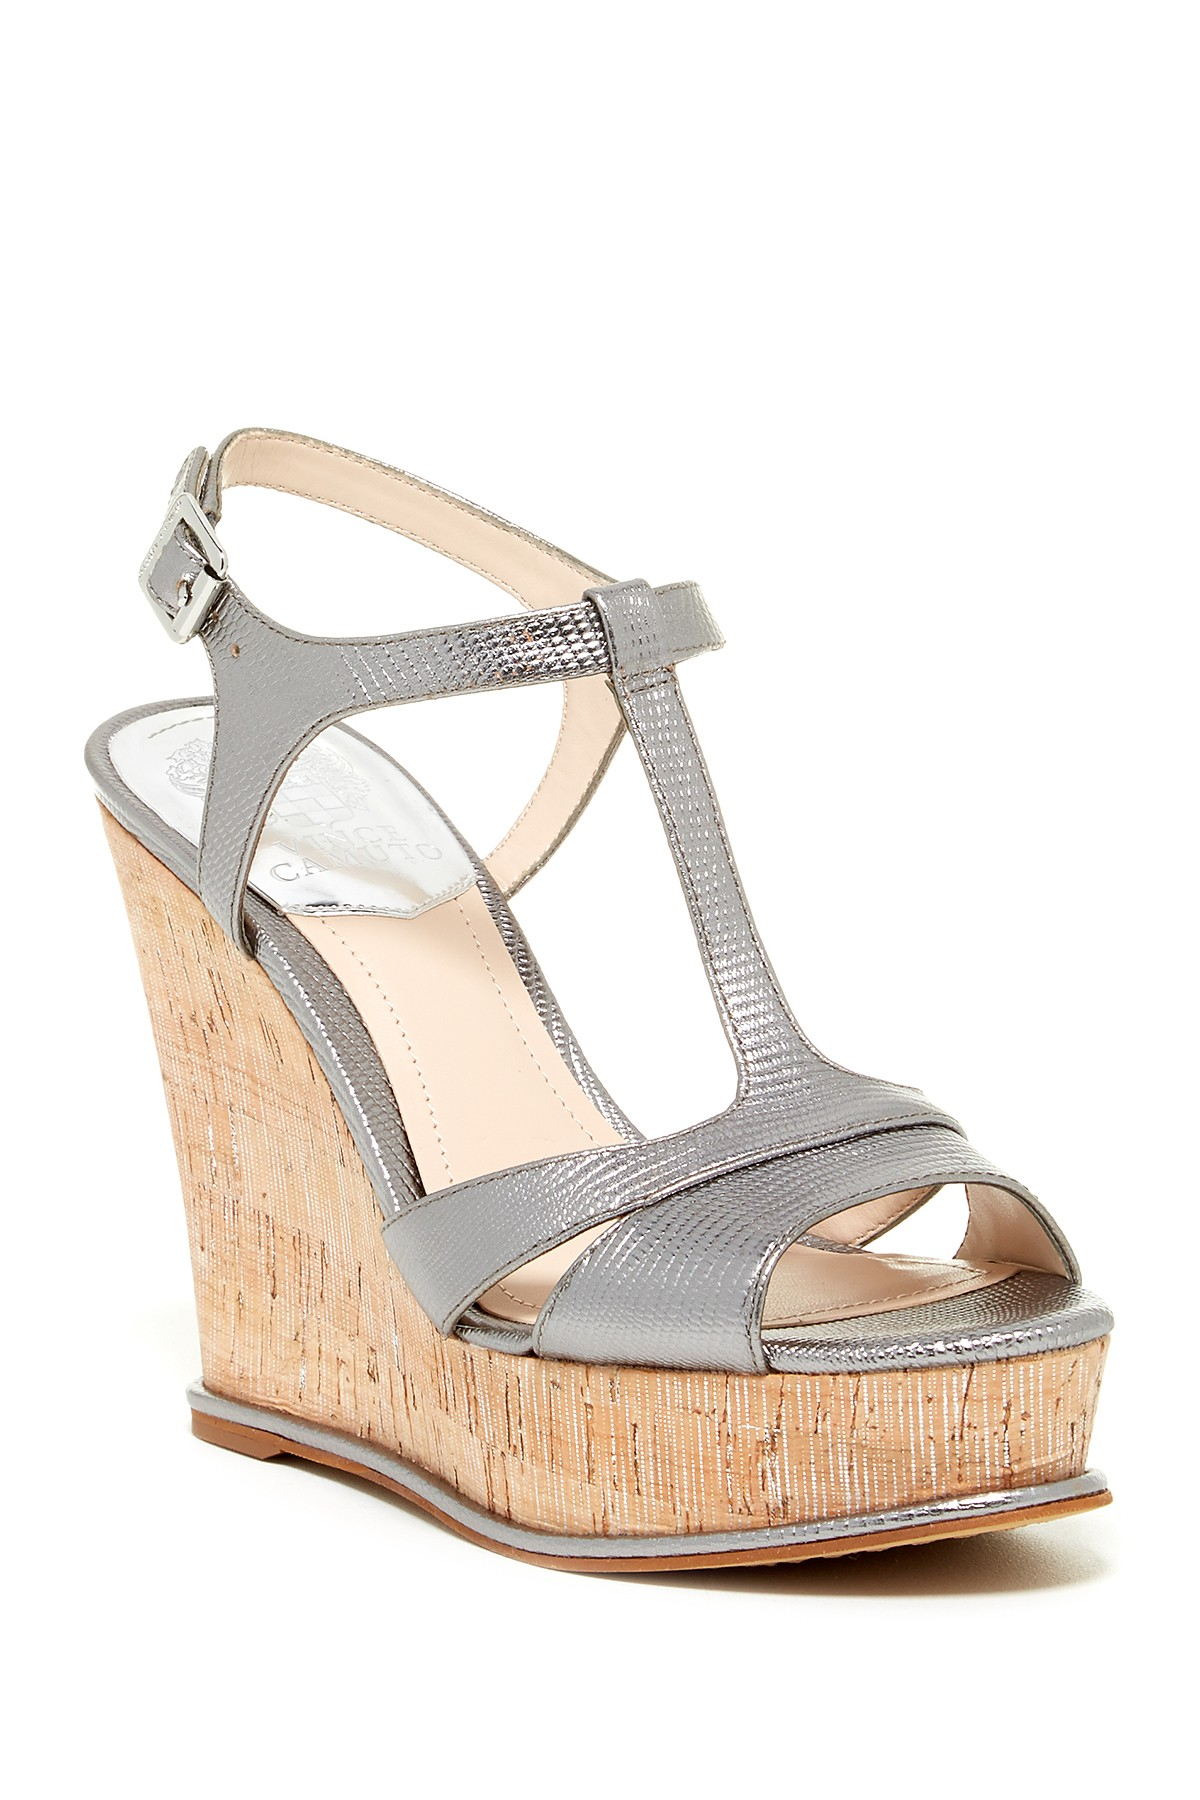 Vince Camuto Women S Inslo Wedge Sandal Silver Gleam